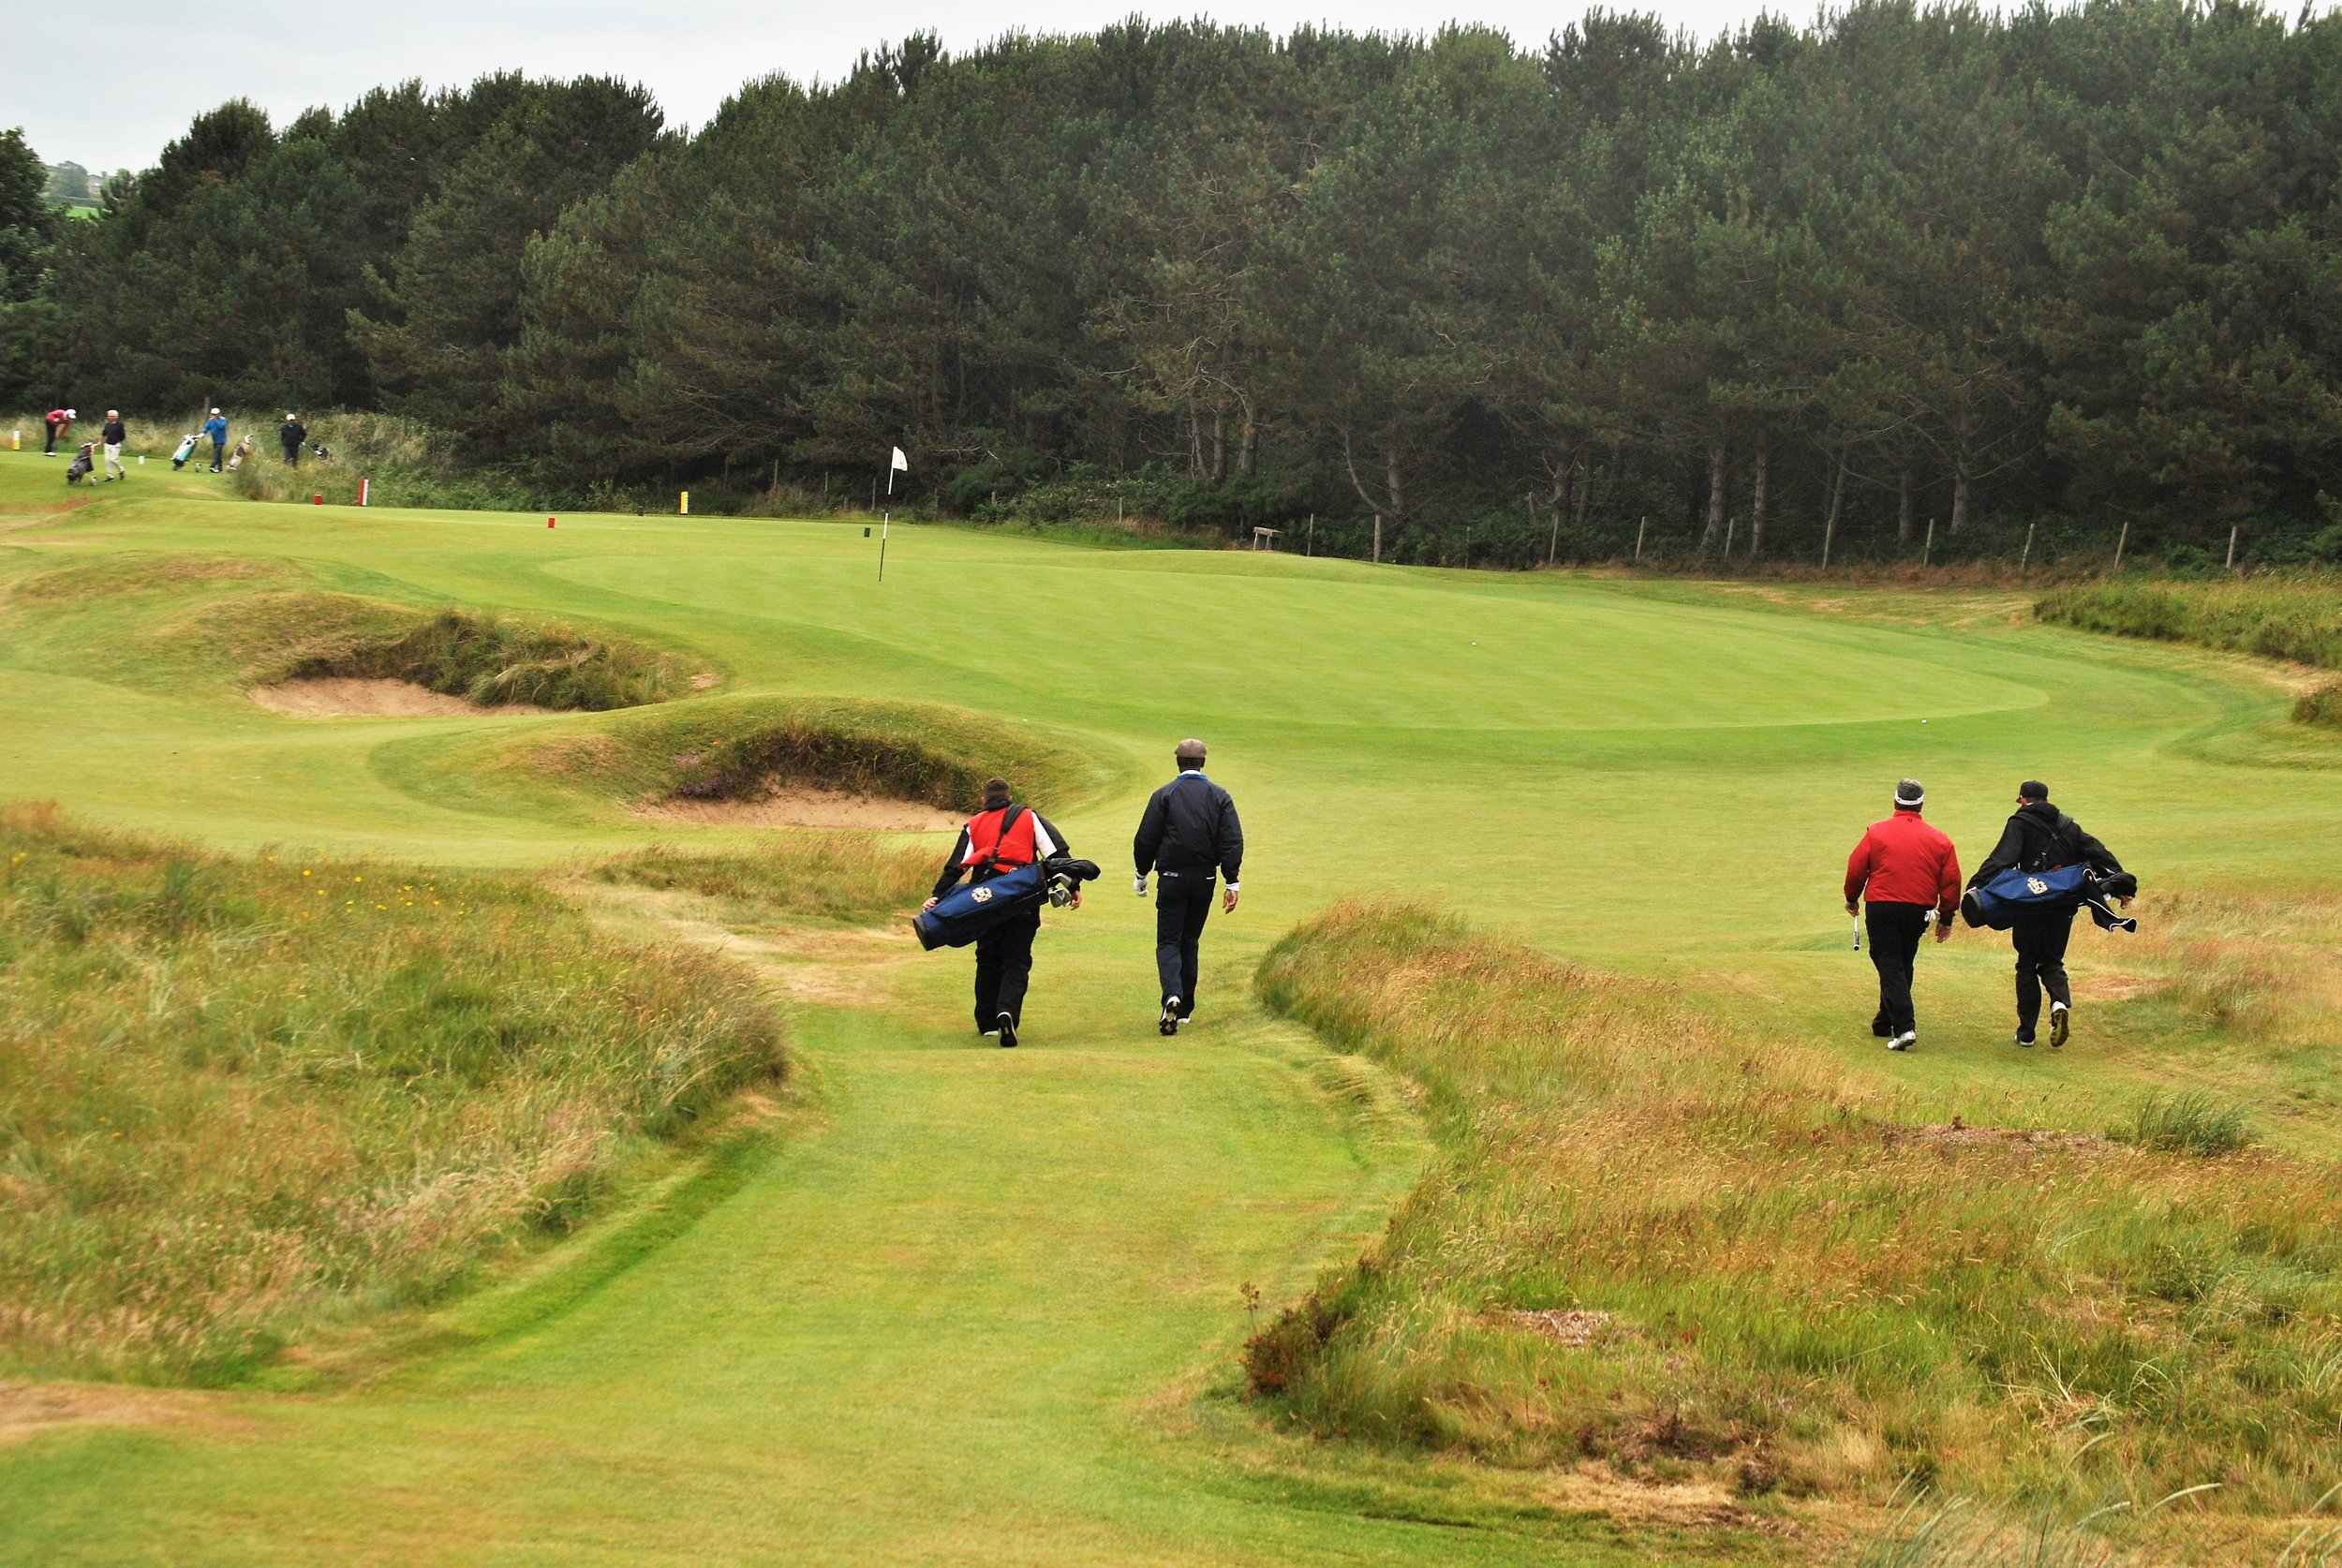 Ciaran and I are on the left and Stewart and Chad are on the right as we walk up to the 14th green